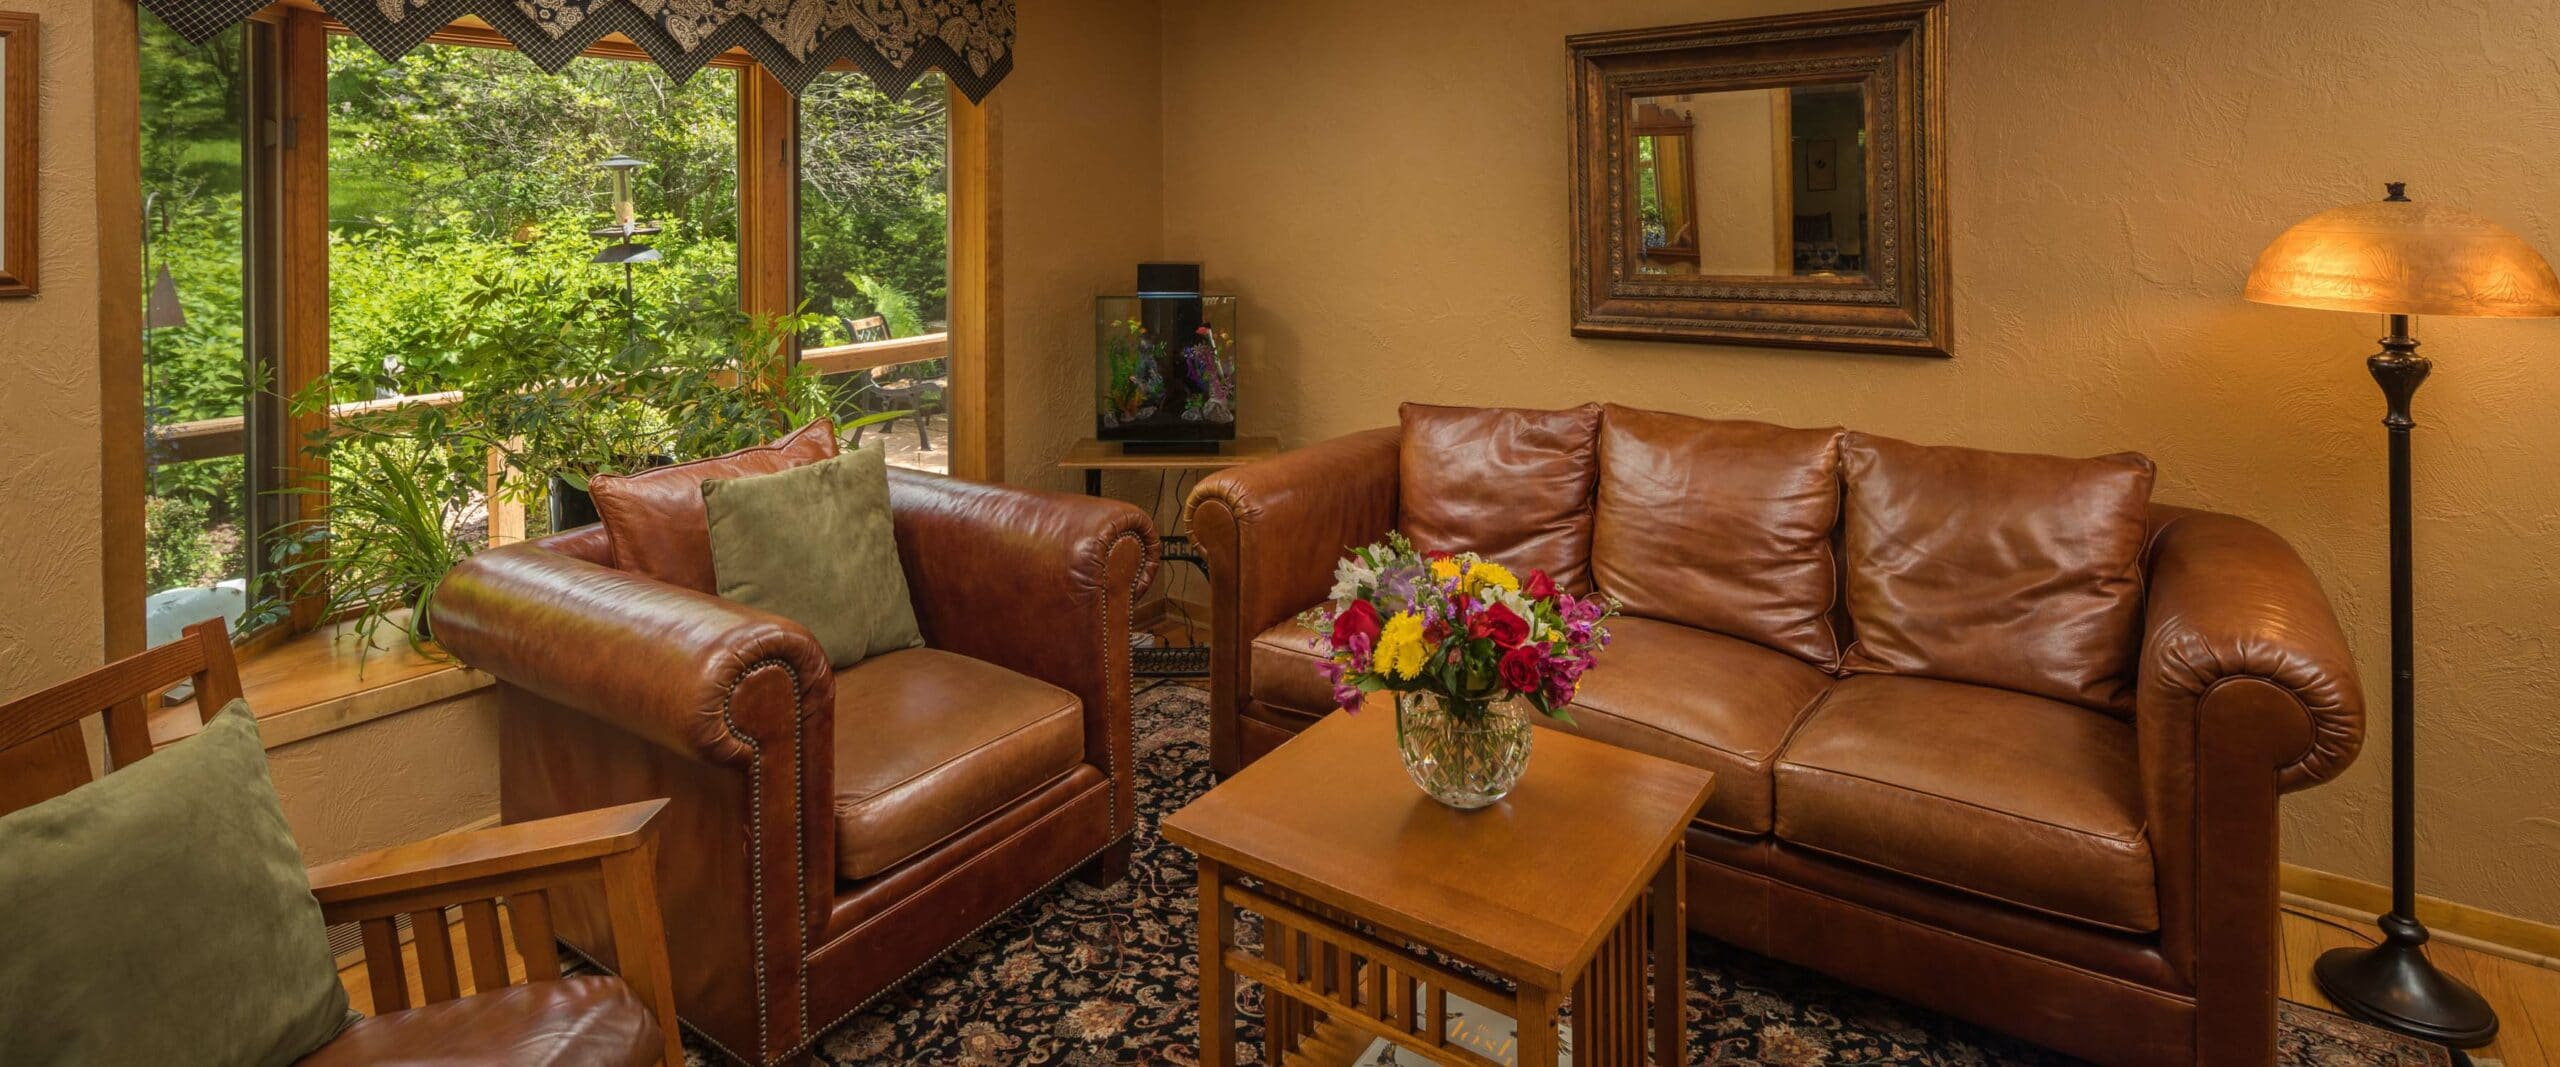 sitting room with leather couches and coffee table